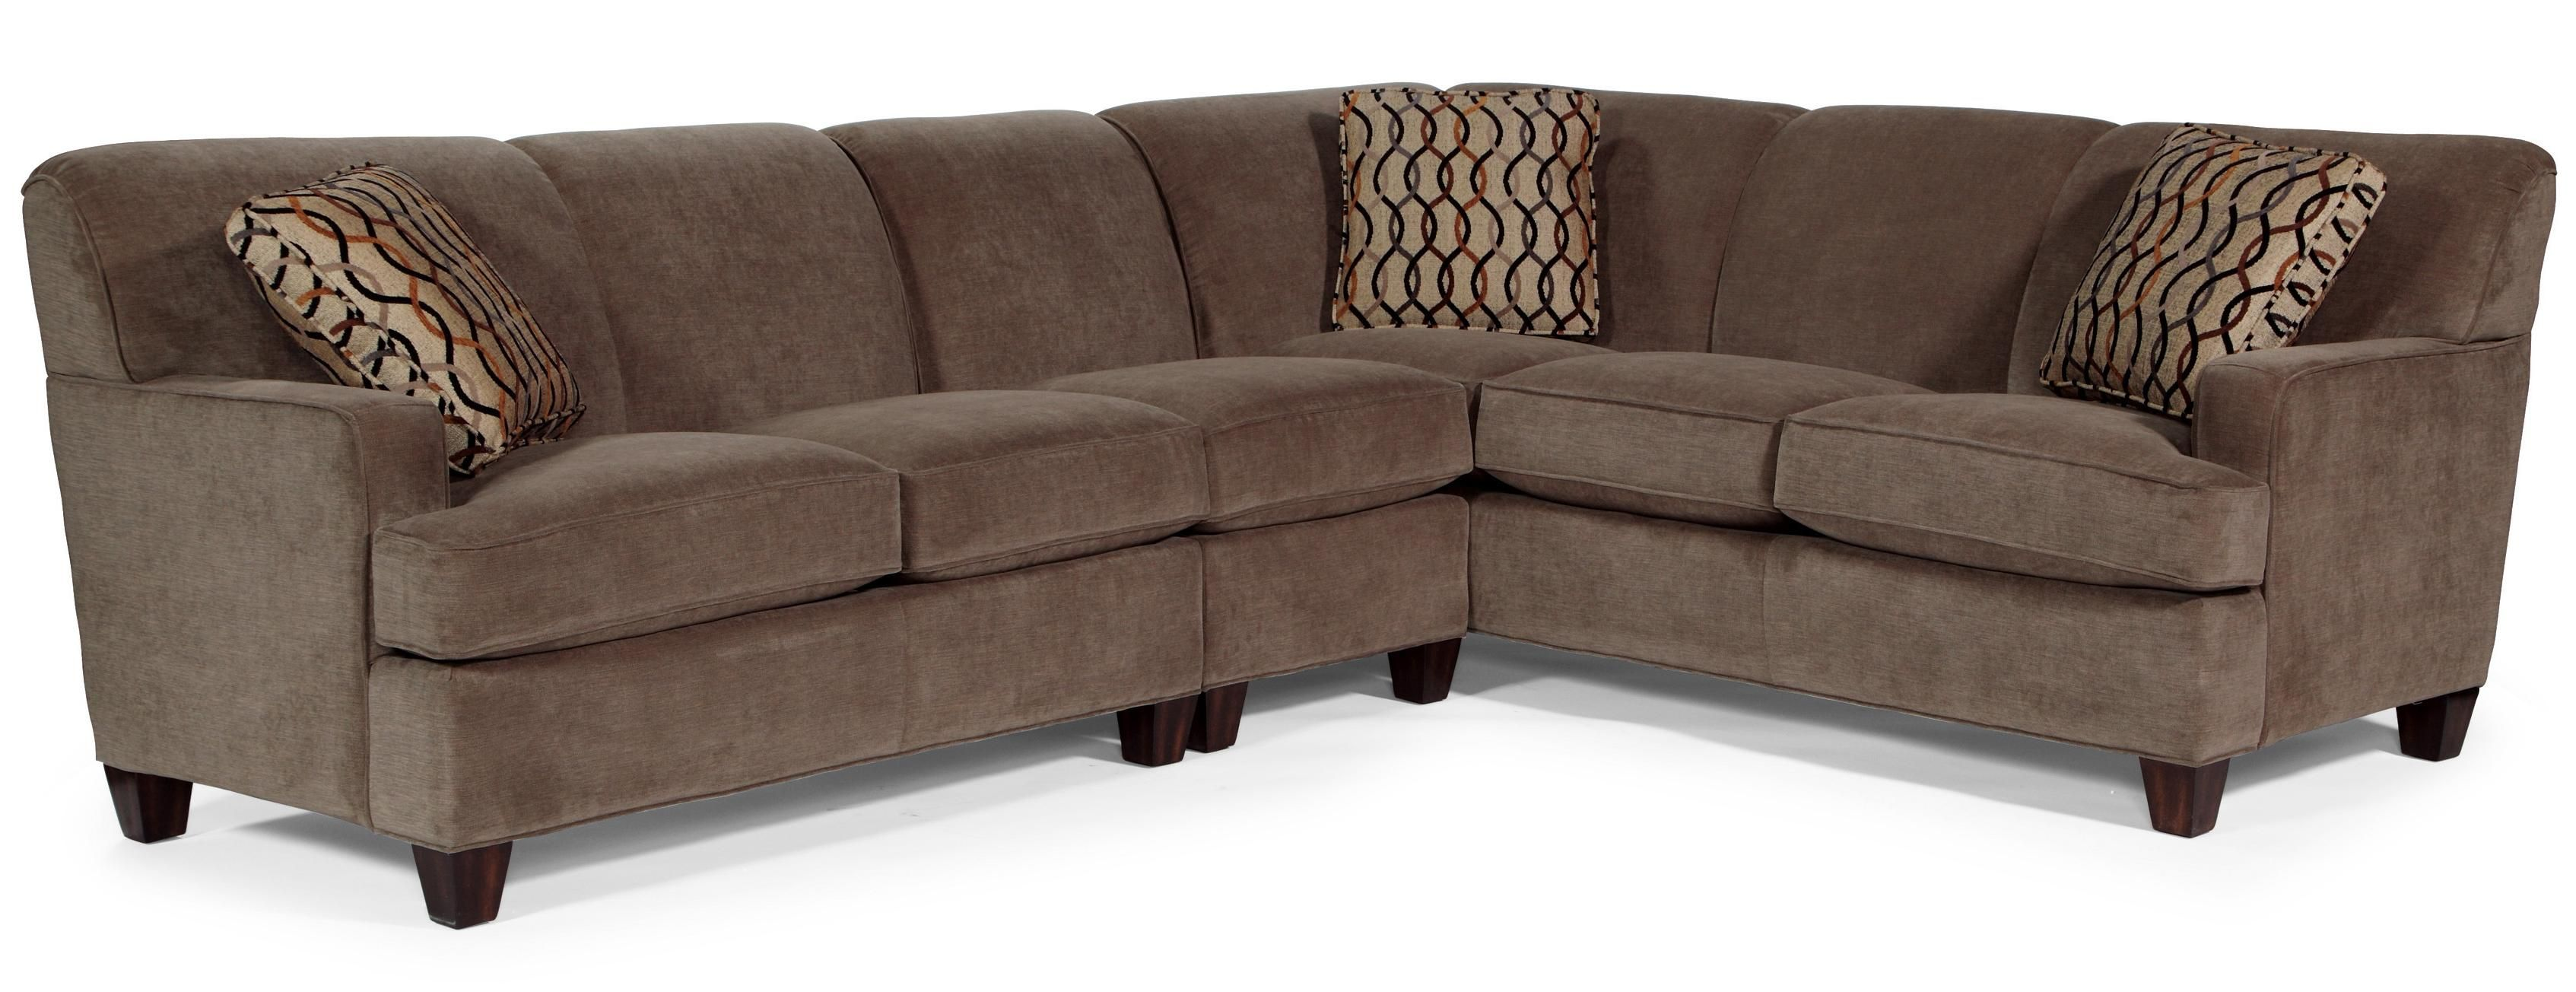 leather sofa nova scotia throw blanket on sectional dempsey 3 pc by flexsteel decorating